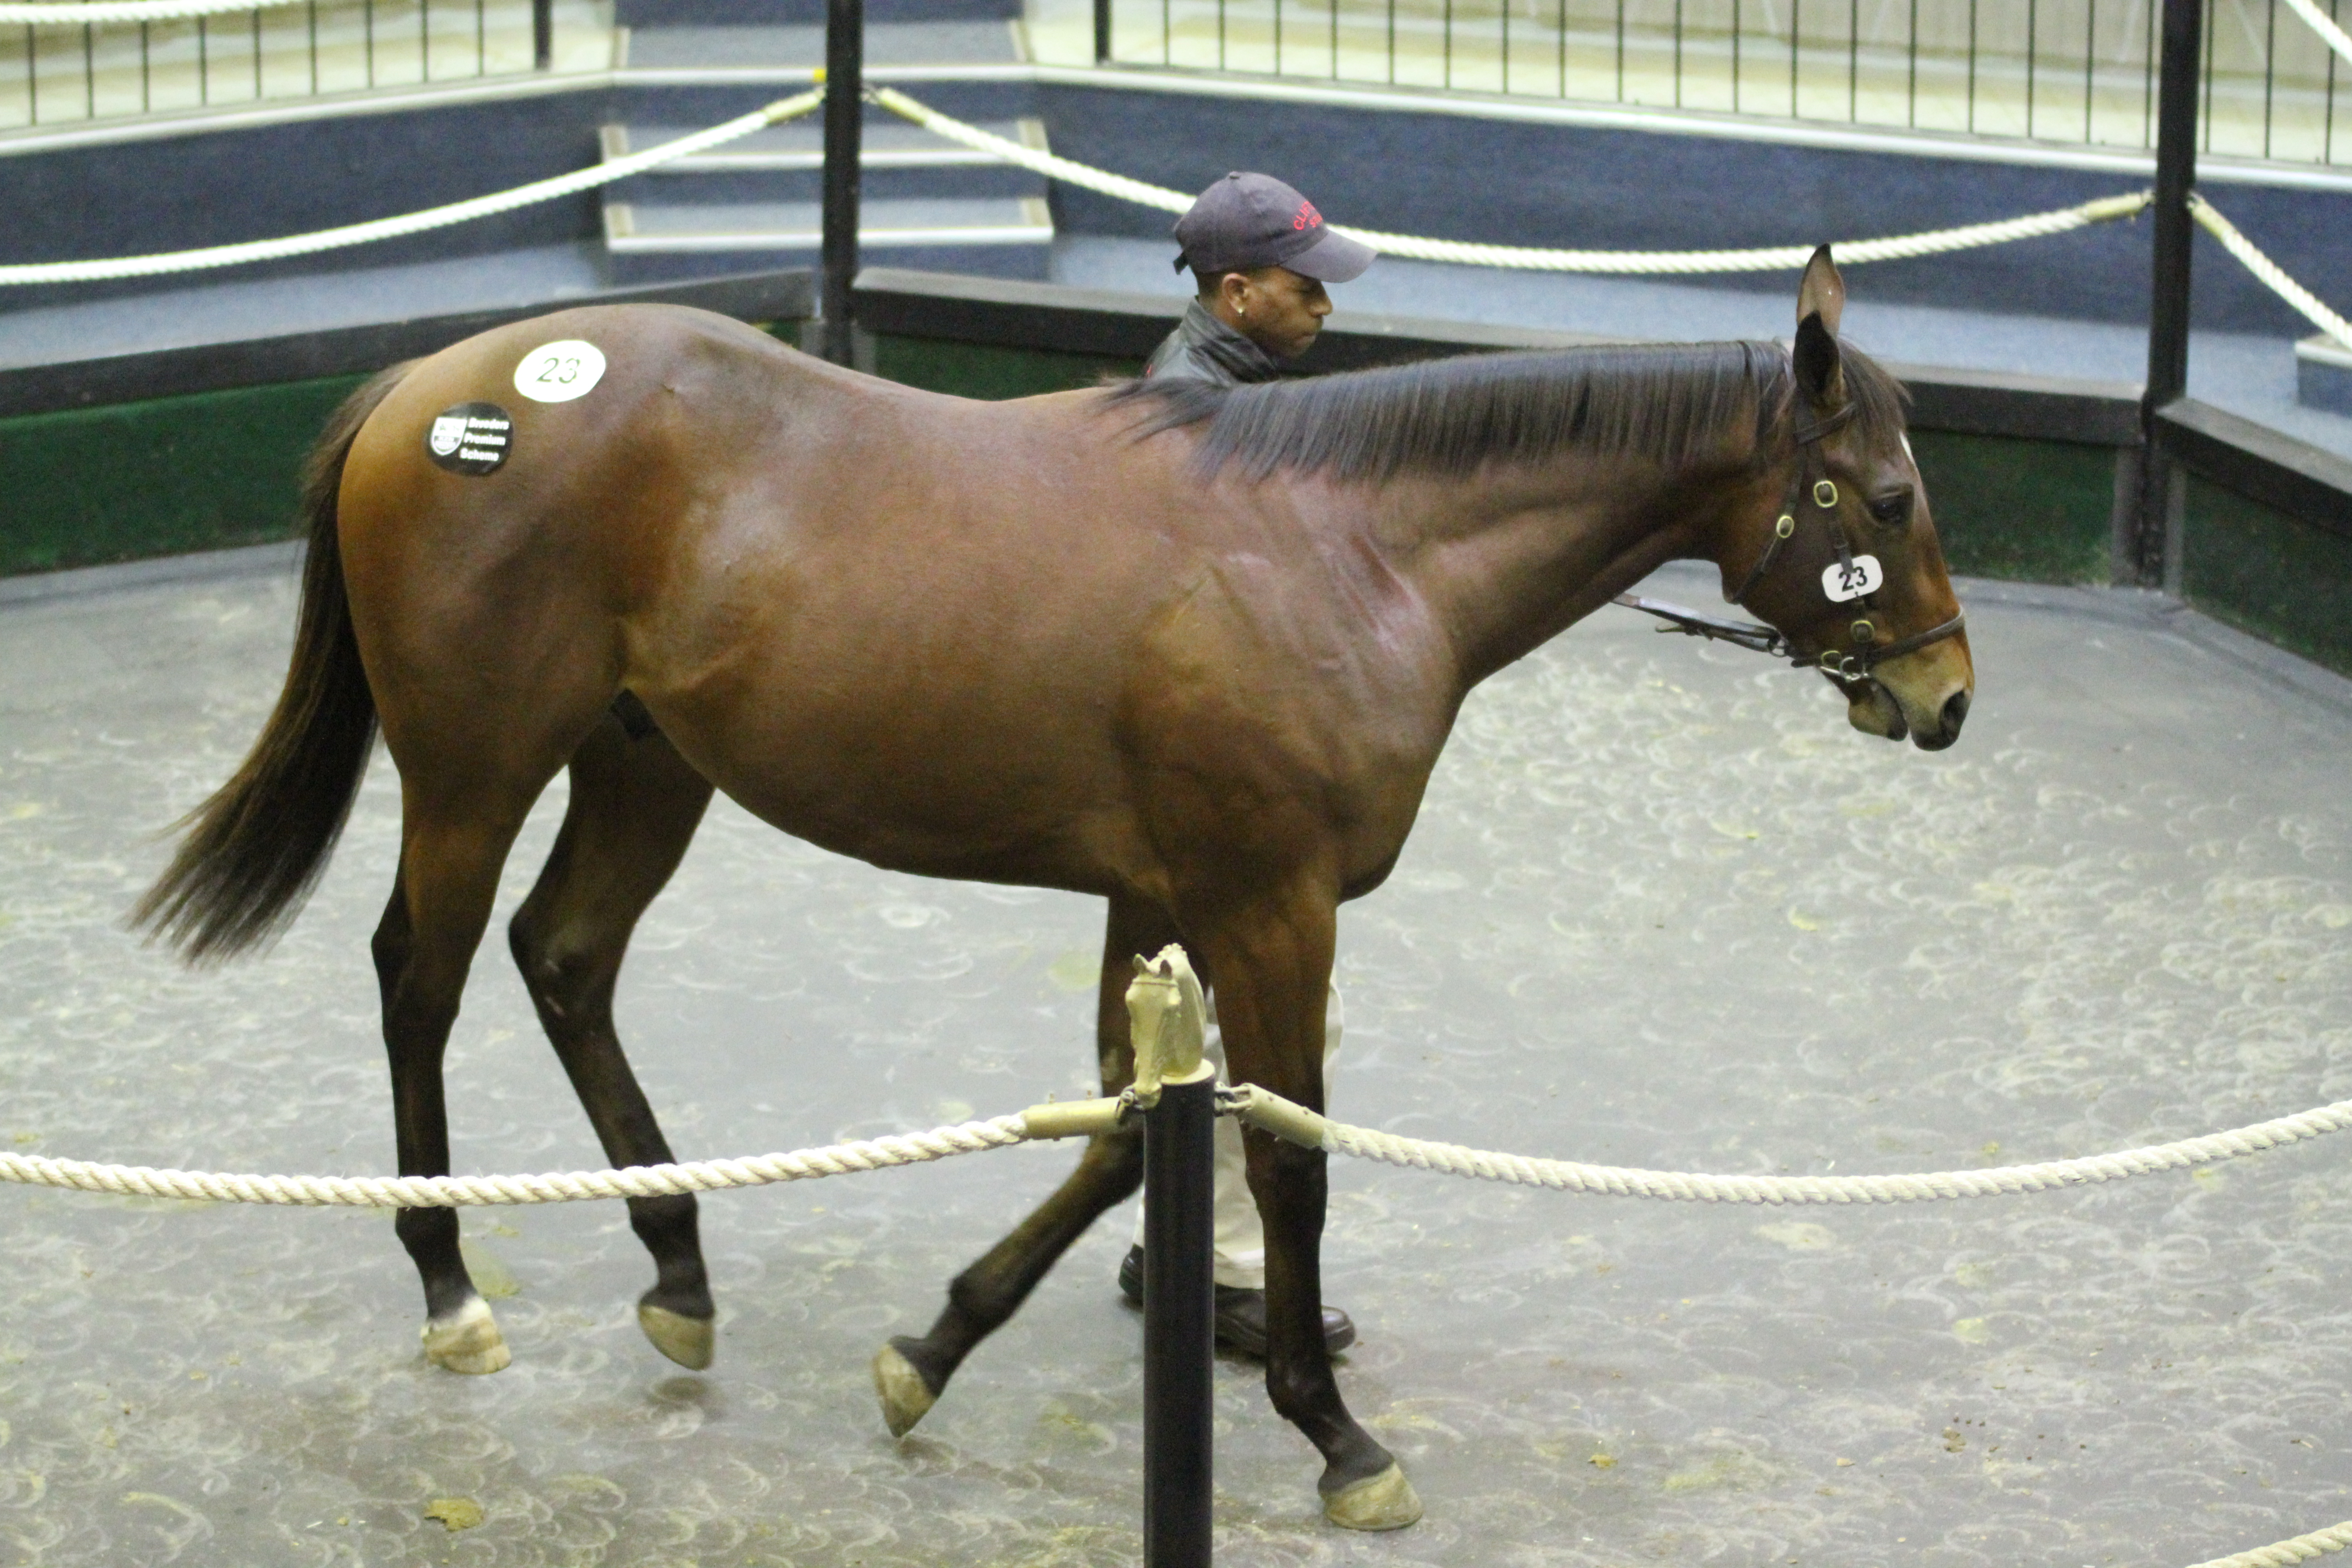 Born A Bully, a half-brother to Gr3 winner The Plunderer won on debut in the Maiden Juvenile Plate this afternoon for breeders Clifton Stud. He sold for just R20 000 at the National 2YO Sale. Image: Candiese Marnewick